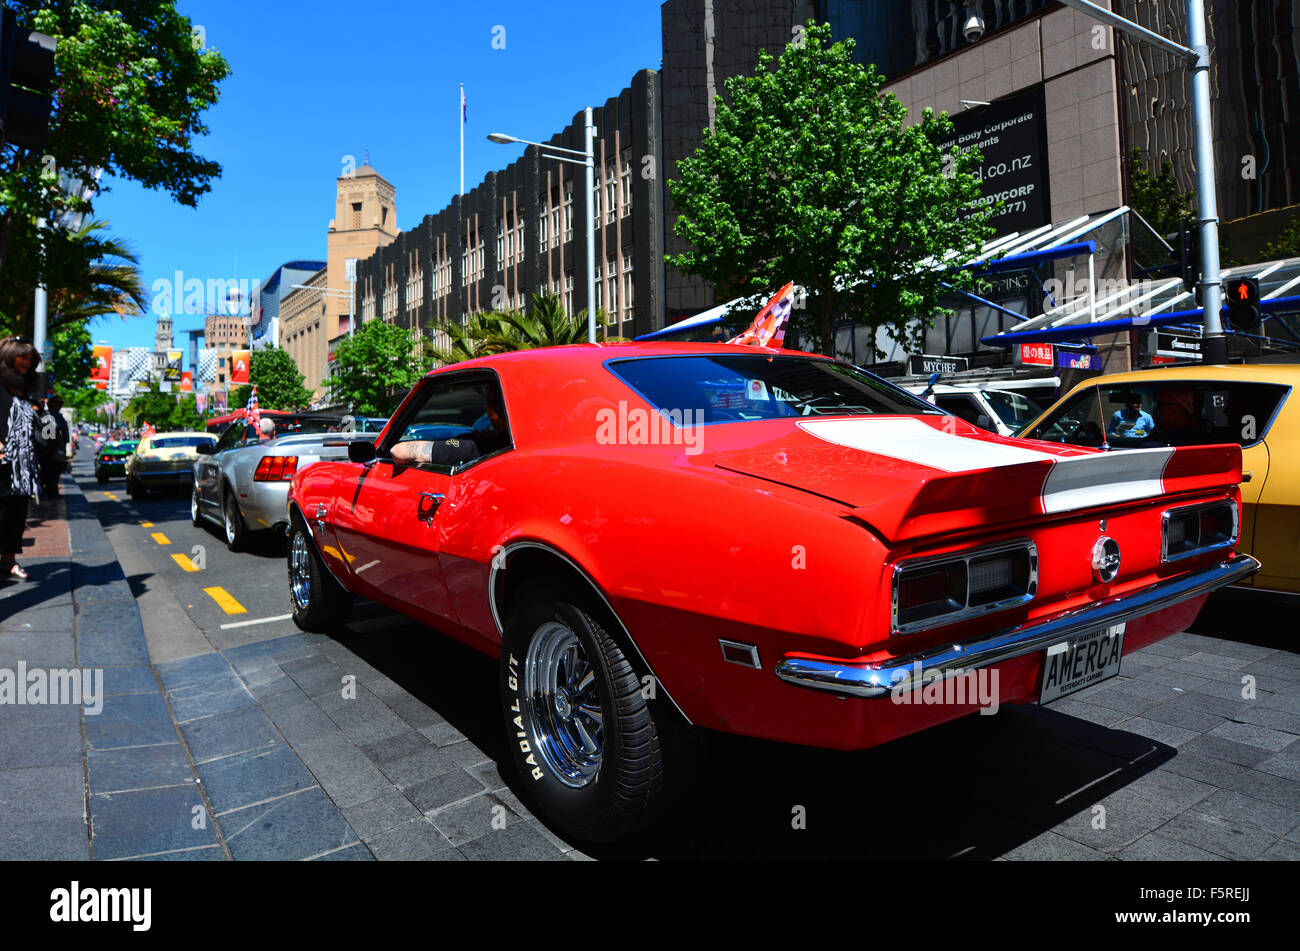 Muscle Car Usa Stock Photos & Muscle Car Usa Stock Images - Alamy